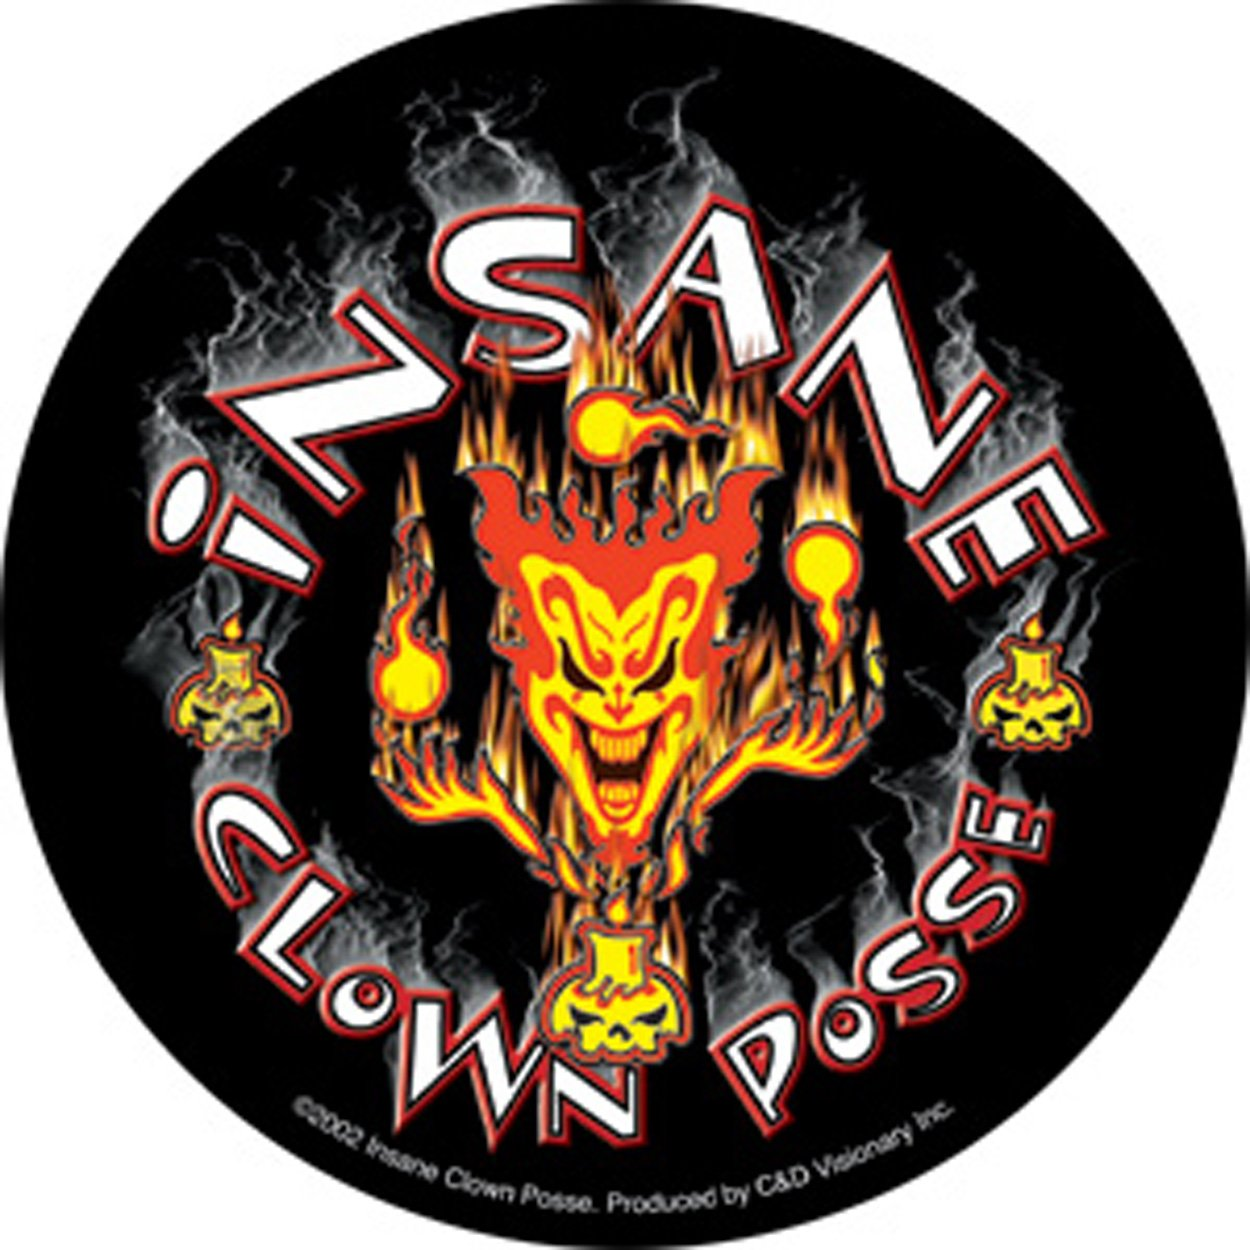 S-1771 Licenses Products Insane Posse Clown Sticker C/&D Visionary Inc